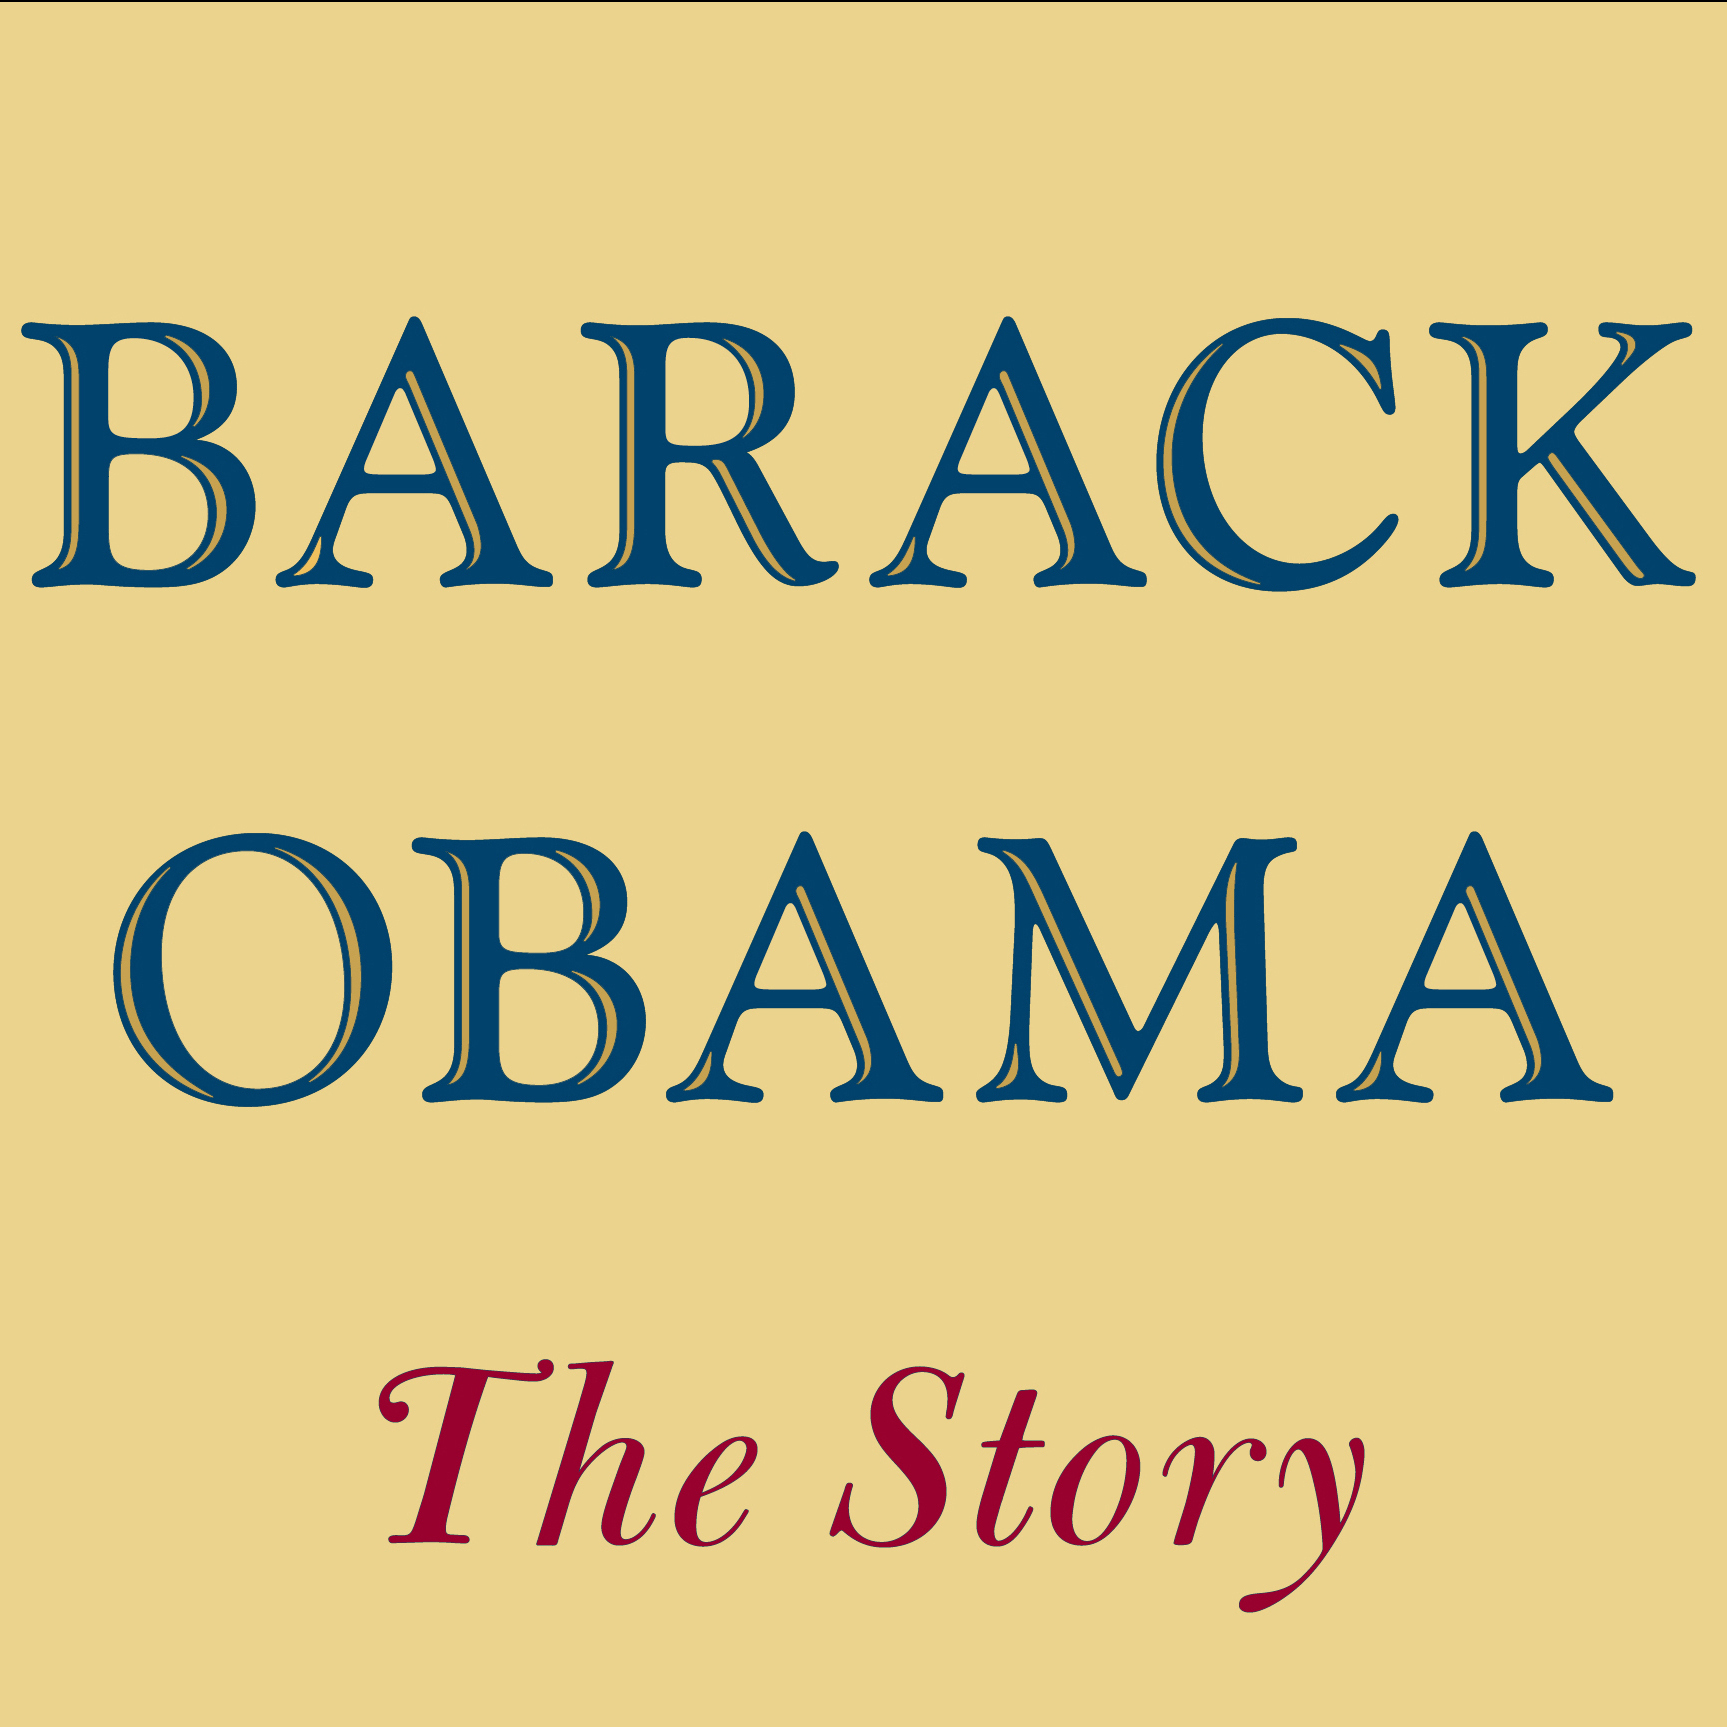 Barack Obama: The Story book cover